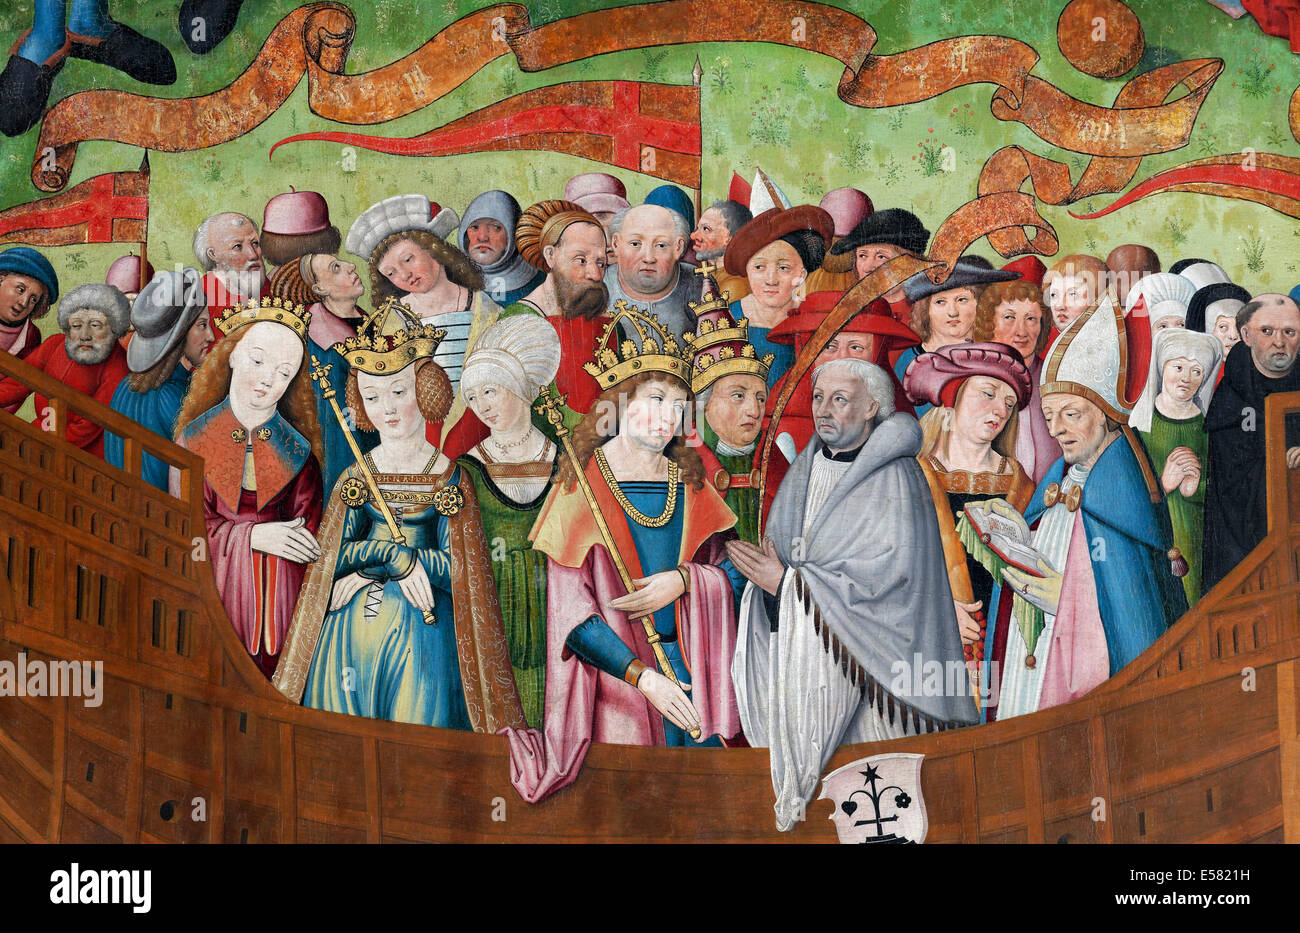 People Of All Classes Of The Middle Ages Gathered On Board